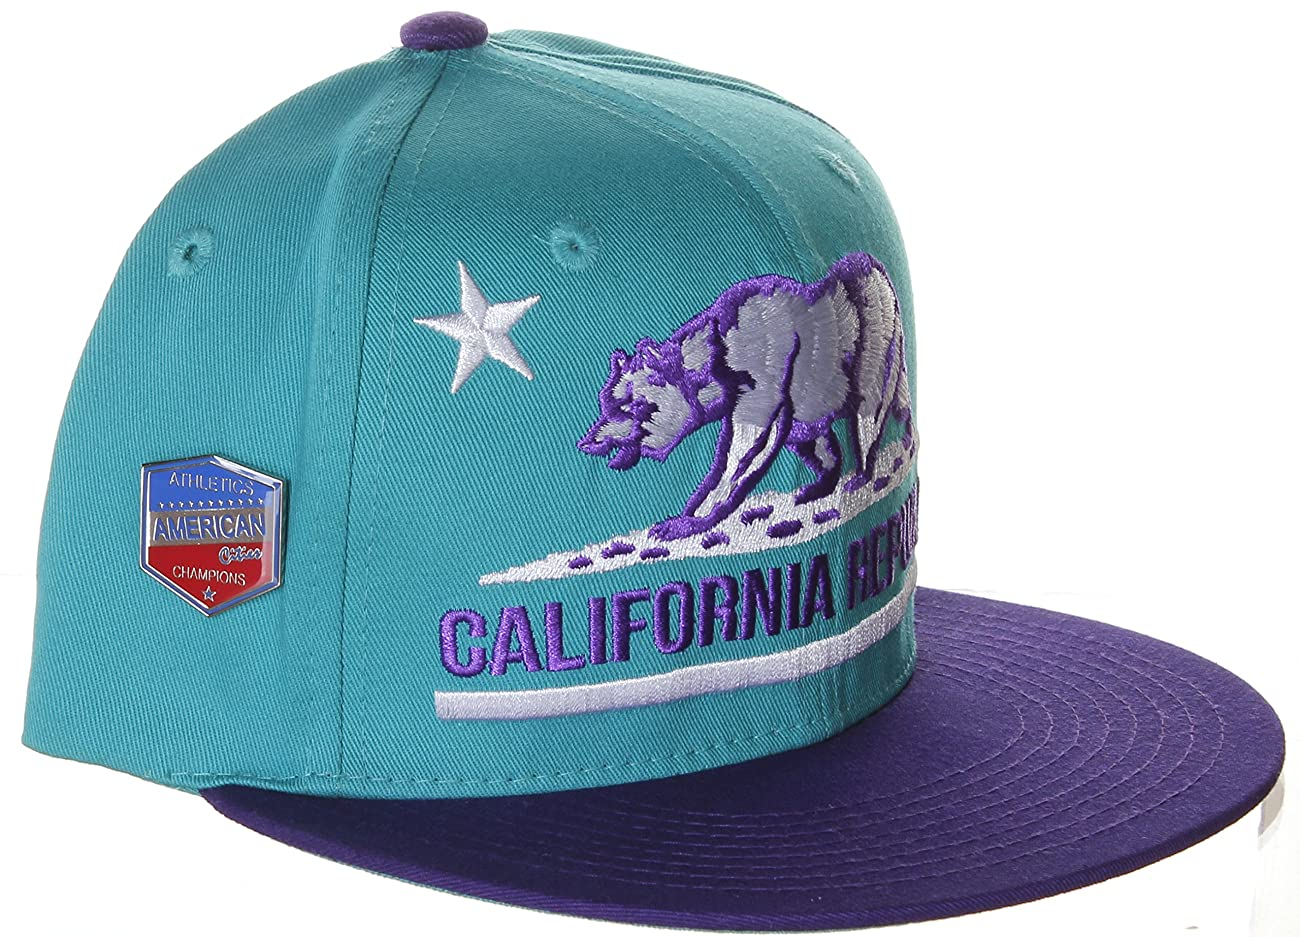 California Republic Flat Bill Vintage Style Snapback Hat Cap 4